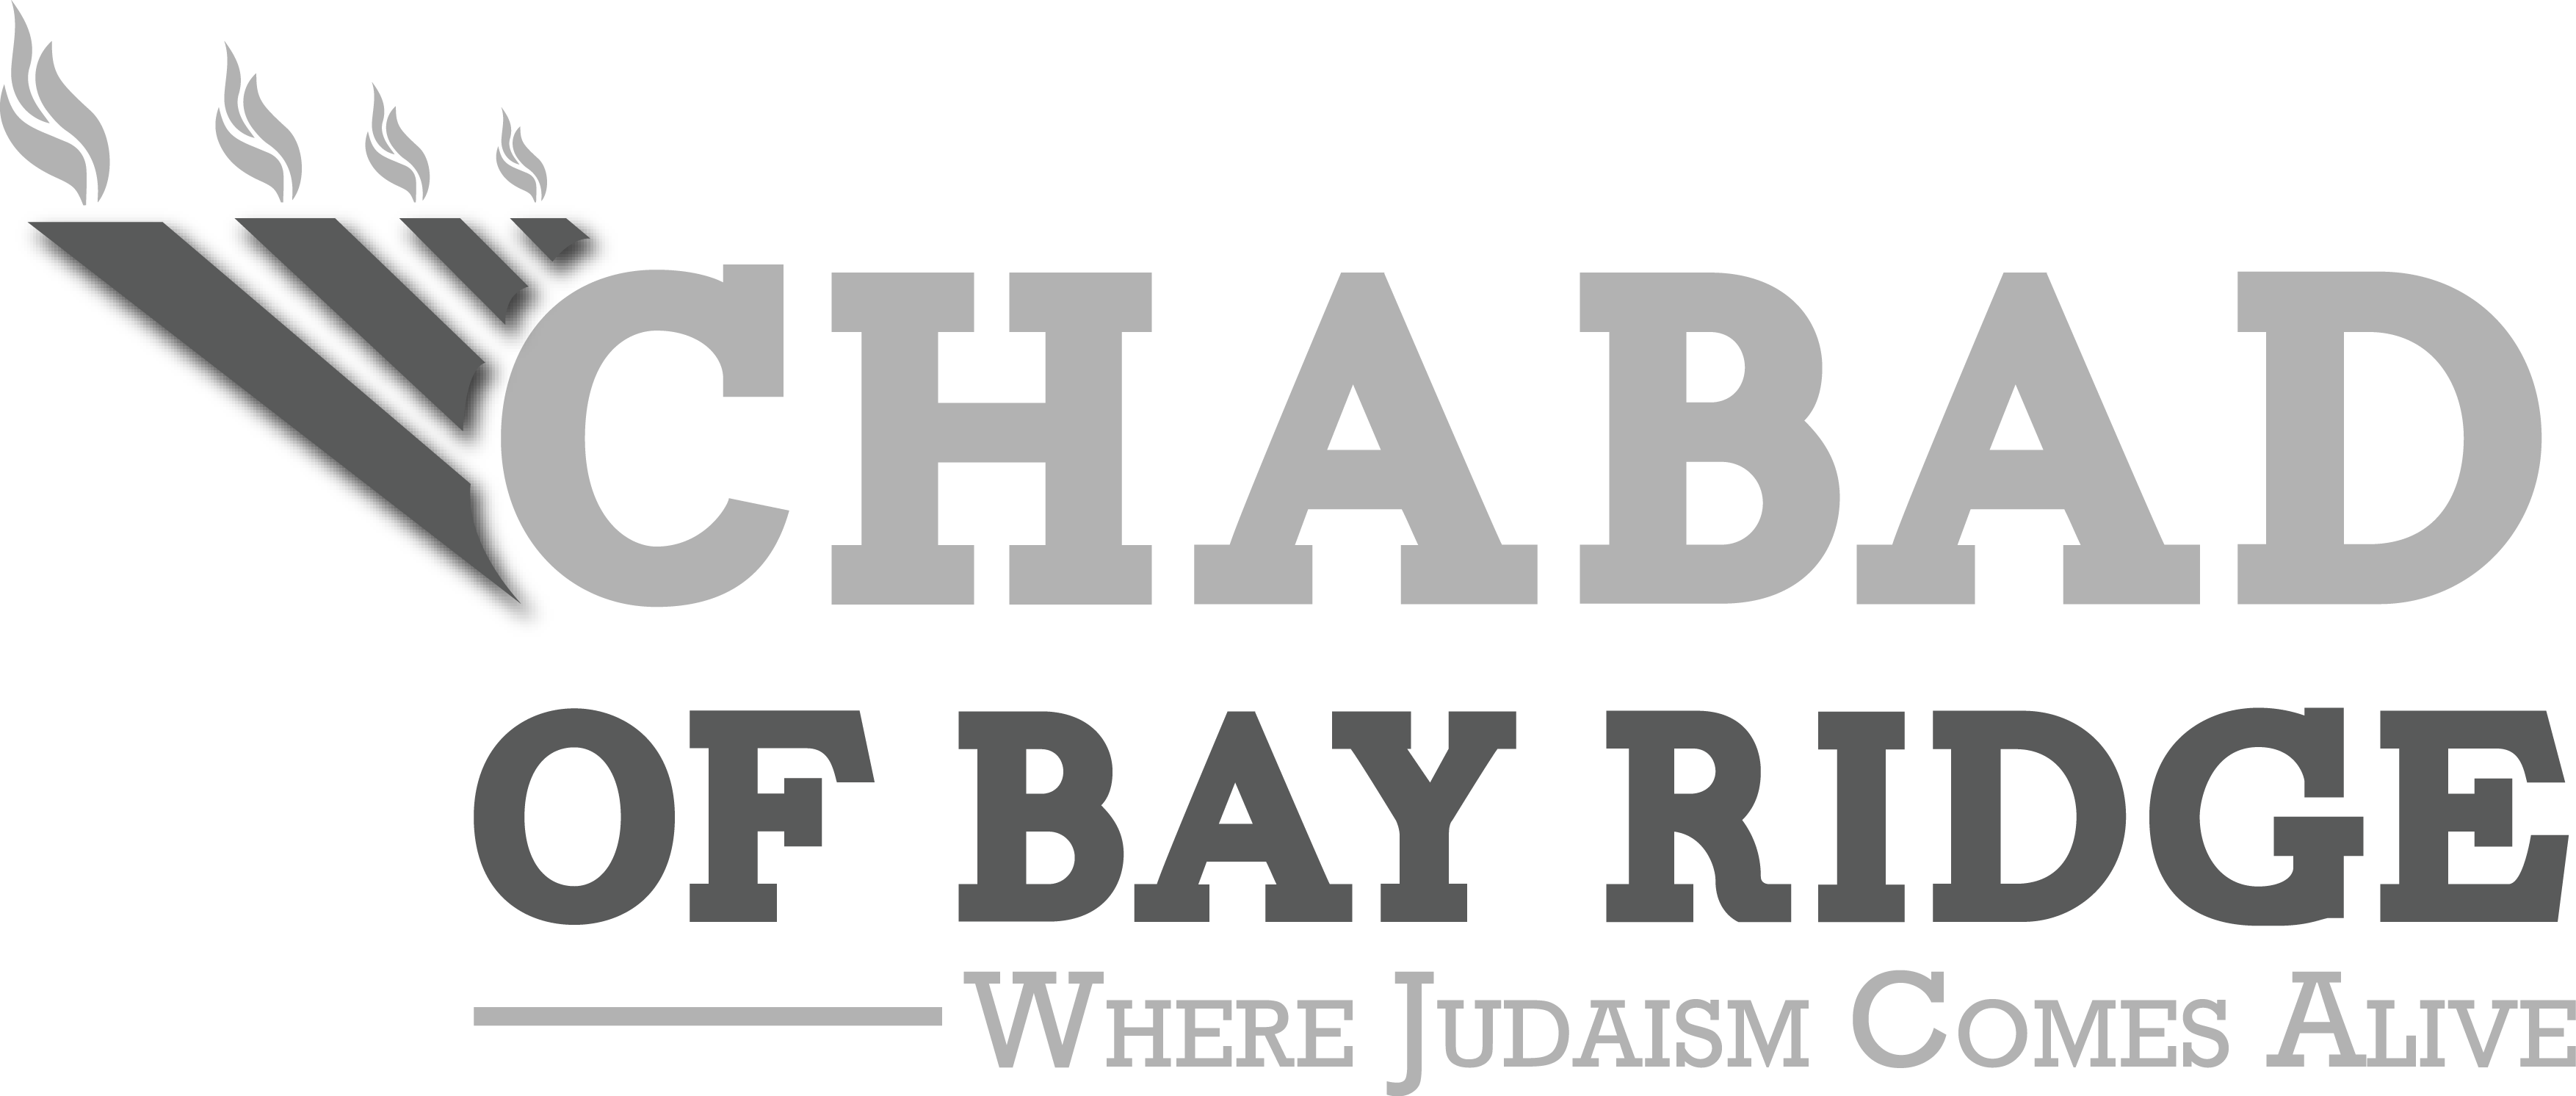 Chabad of Bay Ridge in the News - We\'re in The News! - Chabad of Bay ...